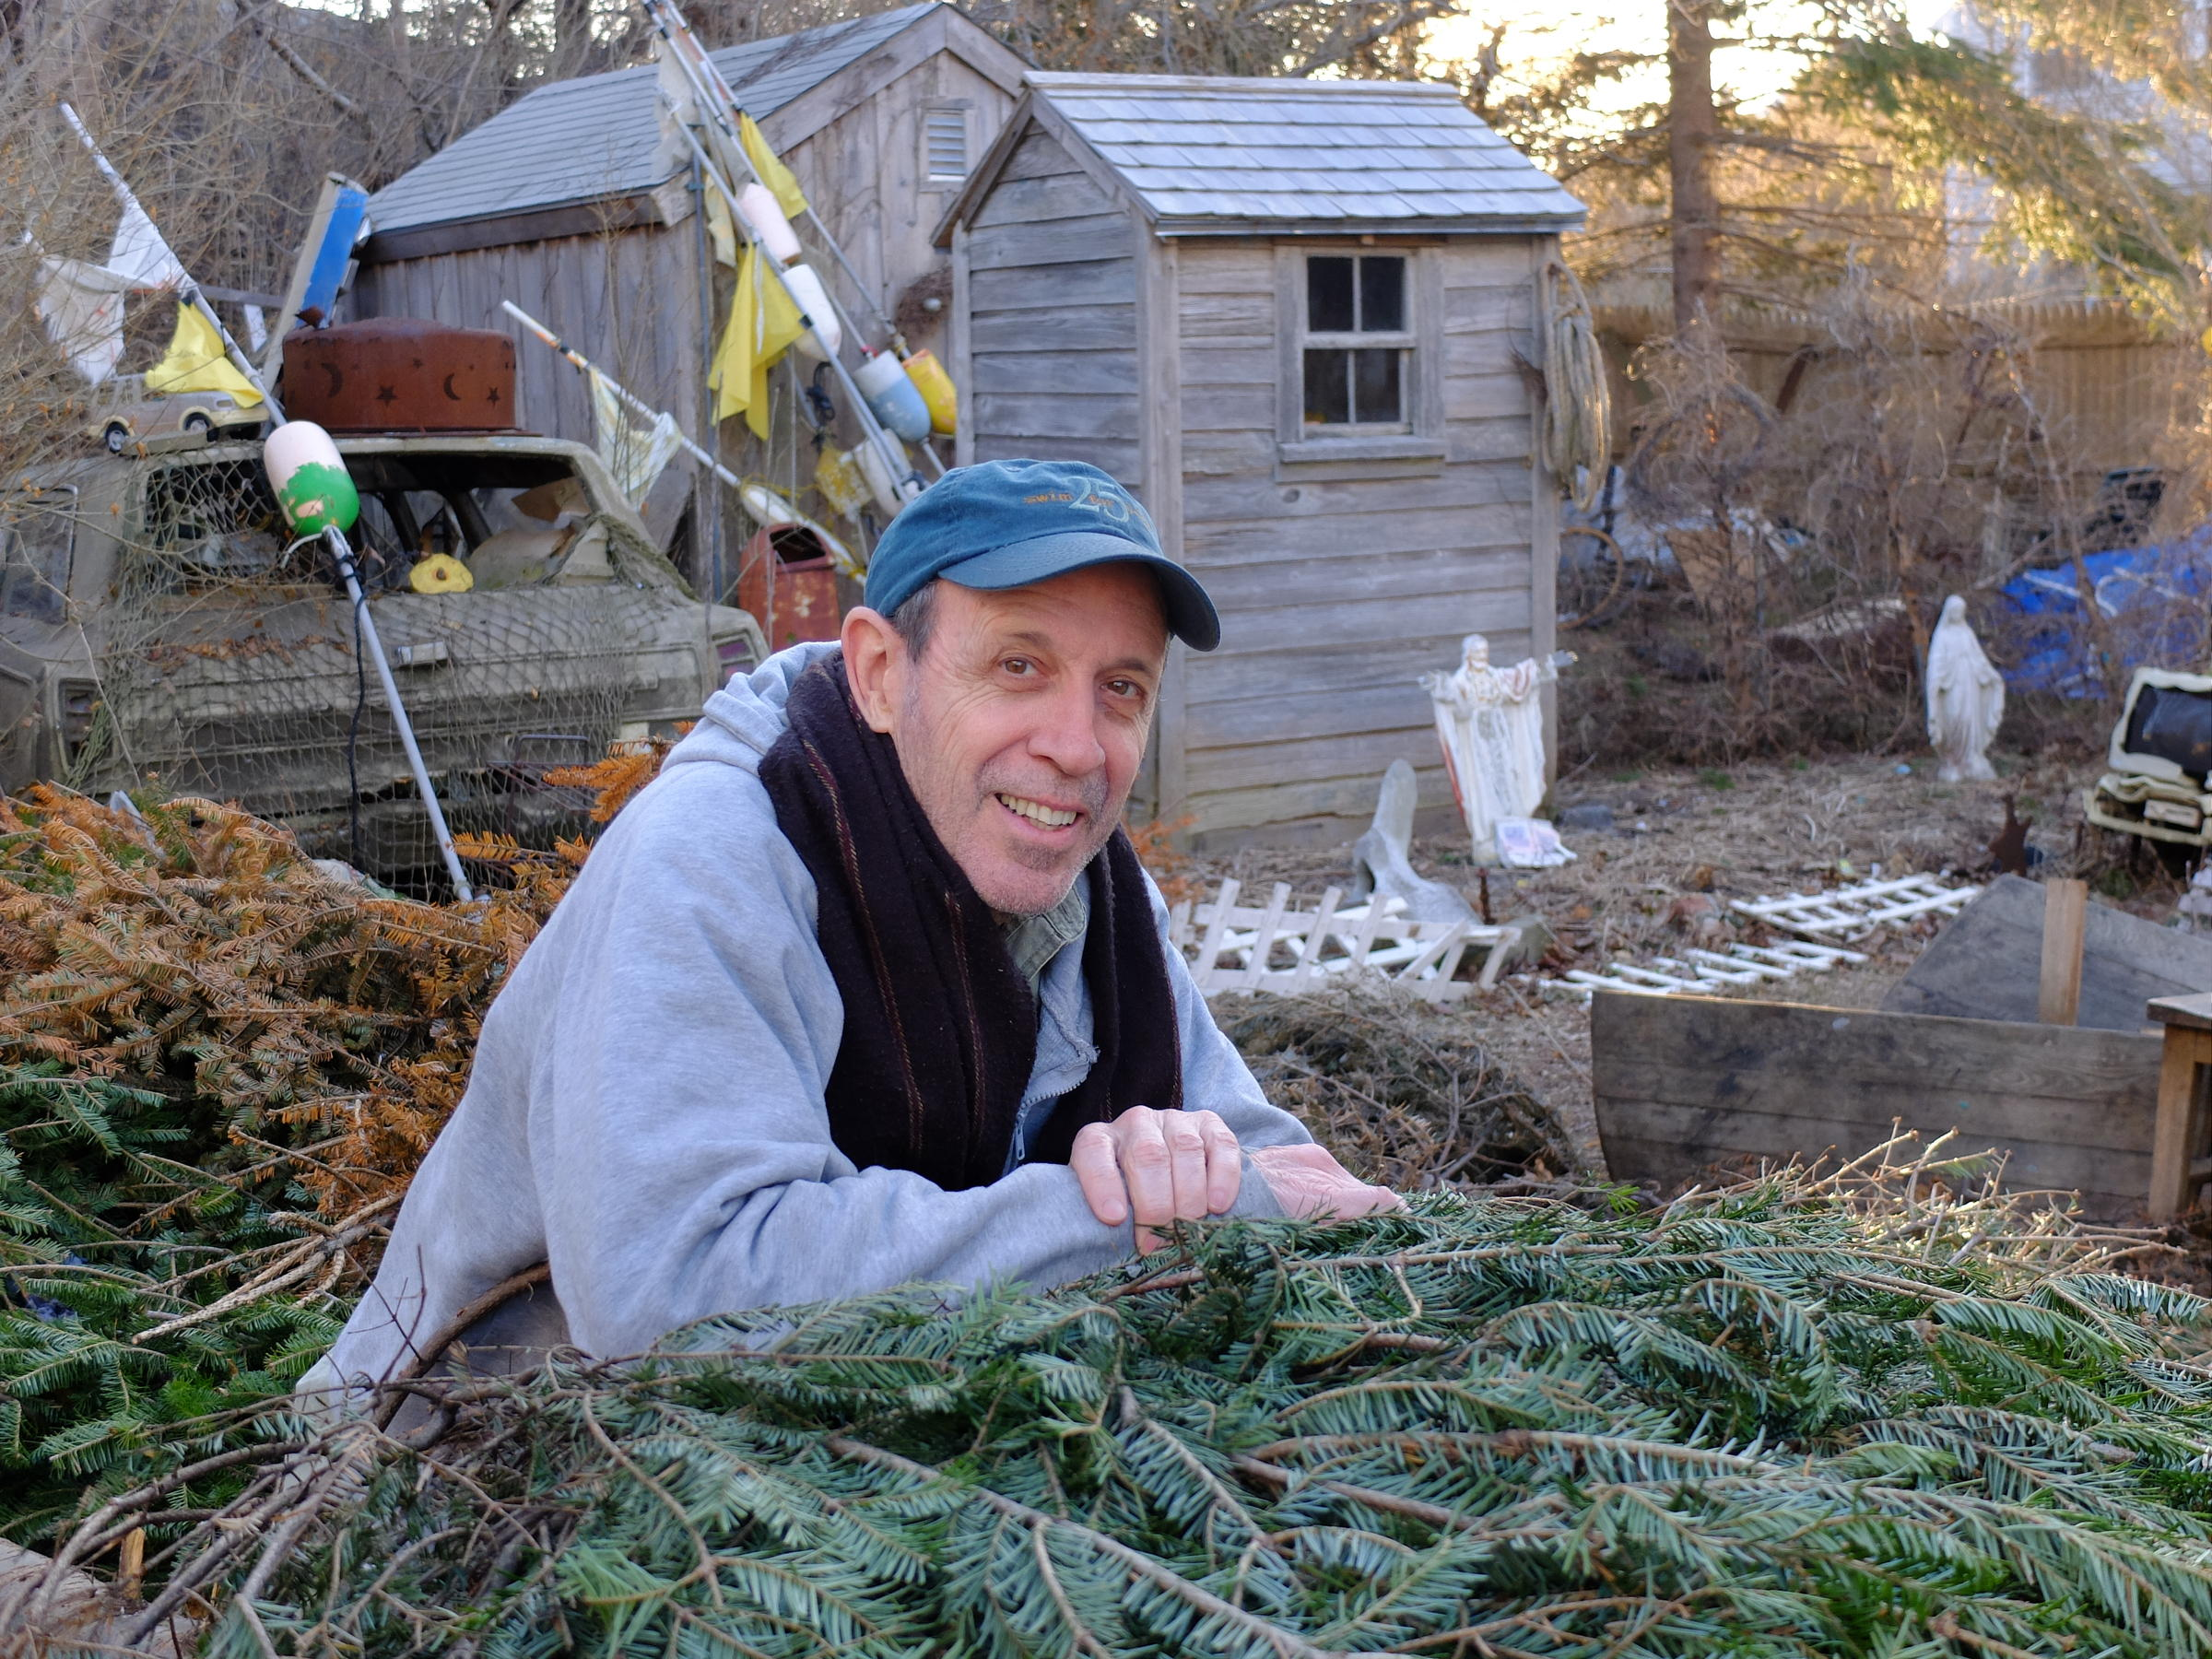 provincetown performance artist jay critchley finds an unusual